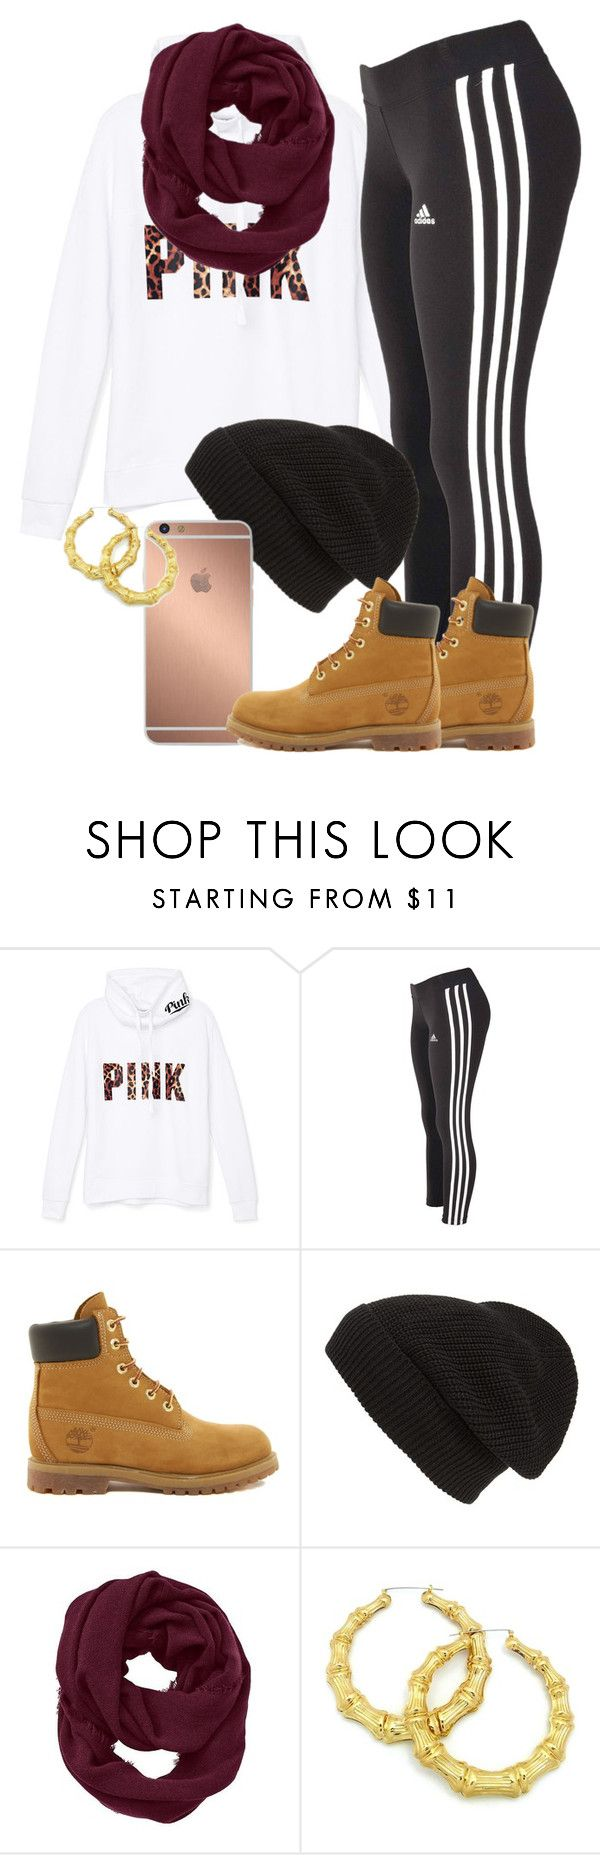 """My ootd"" by thetruthdoesnothavetohurt ❤ liked on Polyvore featuring Victoria's Secret PINK, adidas, Timberland, Phase 3, Mura and Athleta"